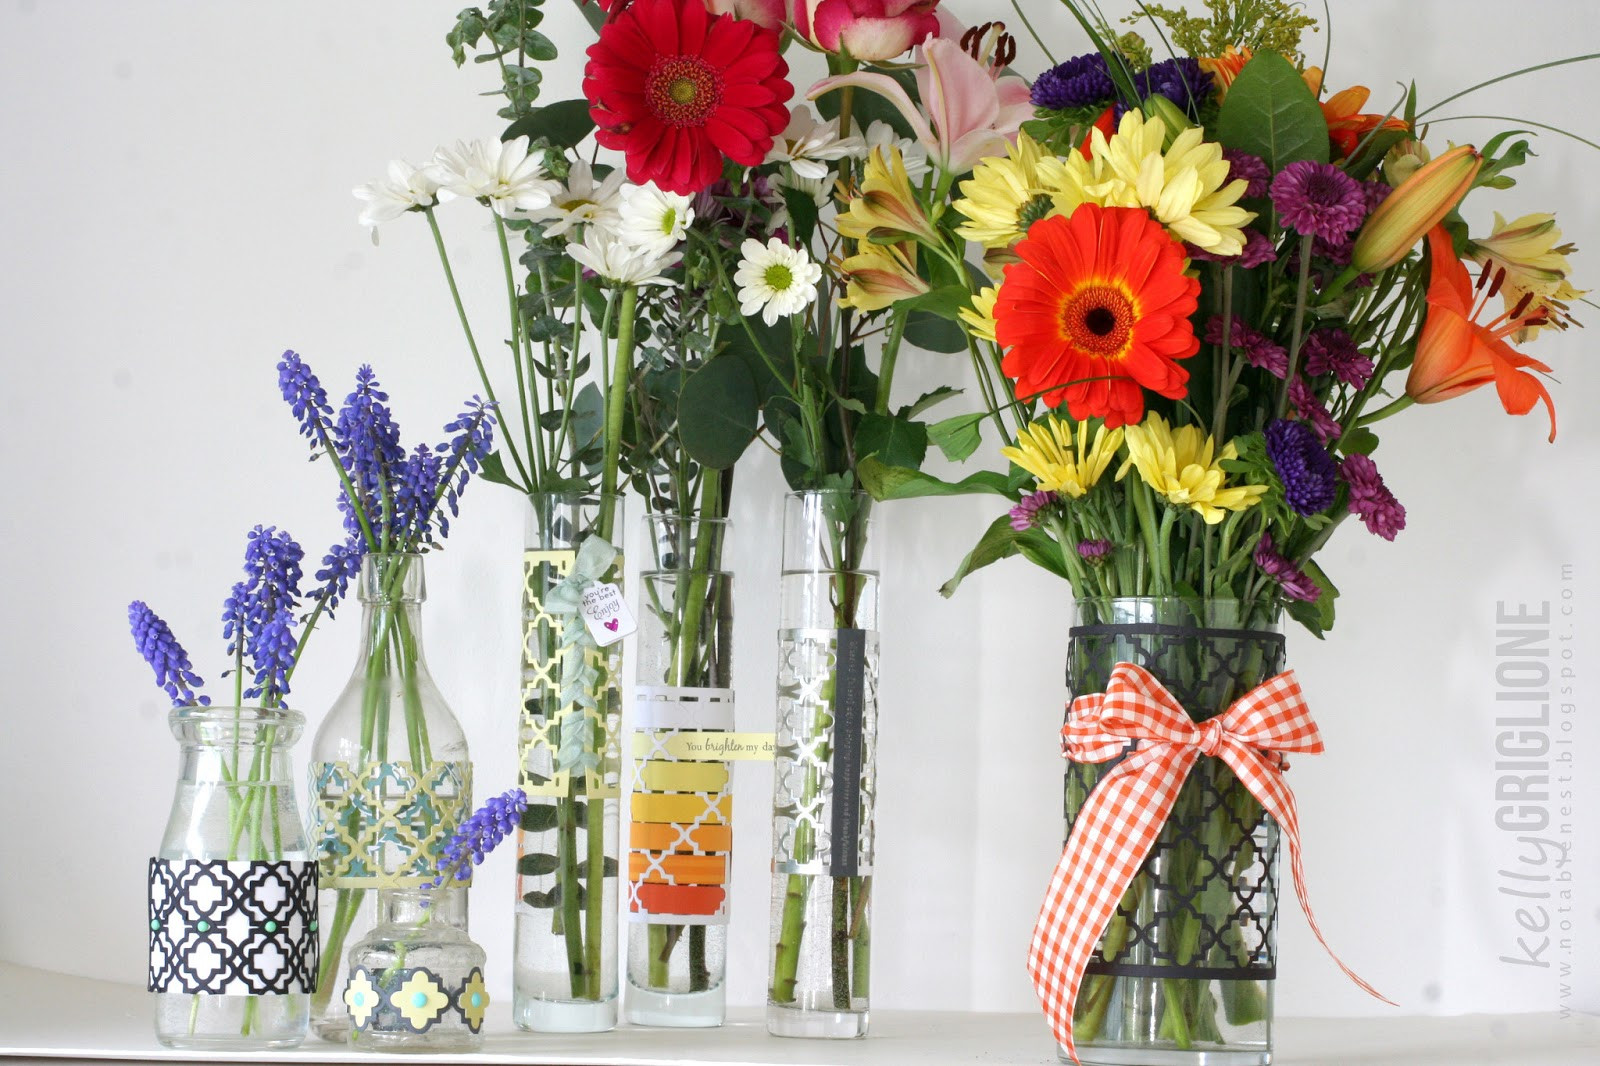 18 Cute the Empty Vase Florist Little Rock Ar 2021 free download the empty vase florist little rock ar of notable nest 350 cards gifts blog hop with the purple arrangements on the left cost me nothing since the vases came from my house milk bottle soda bo